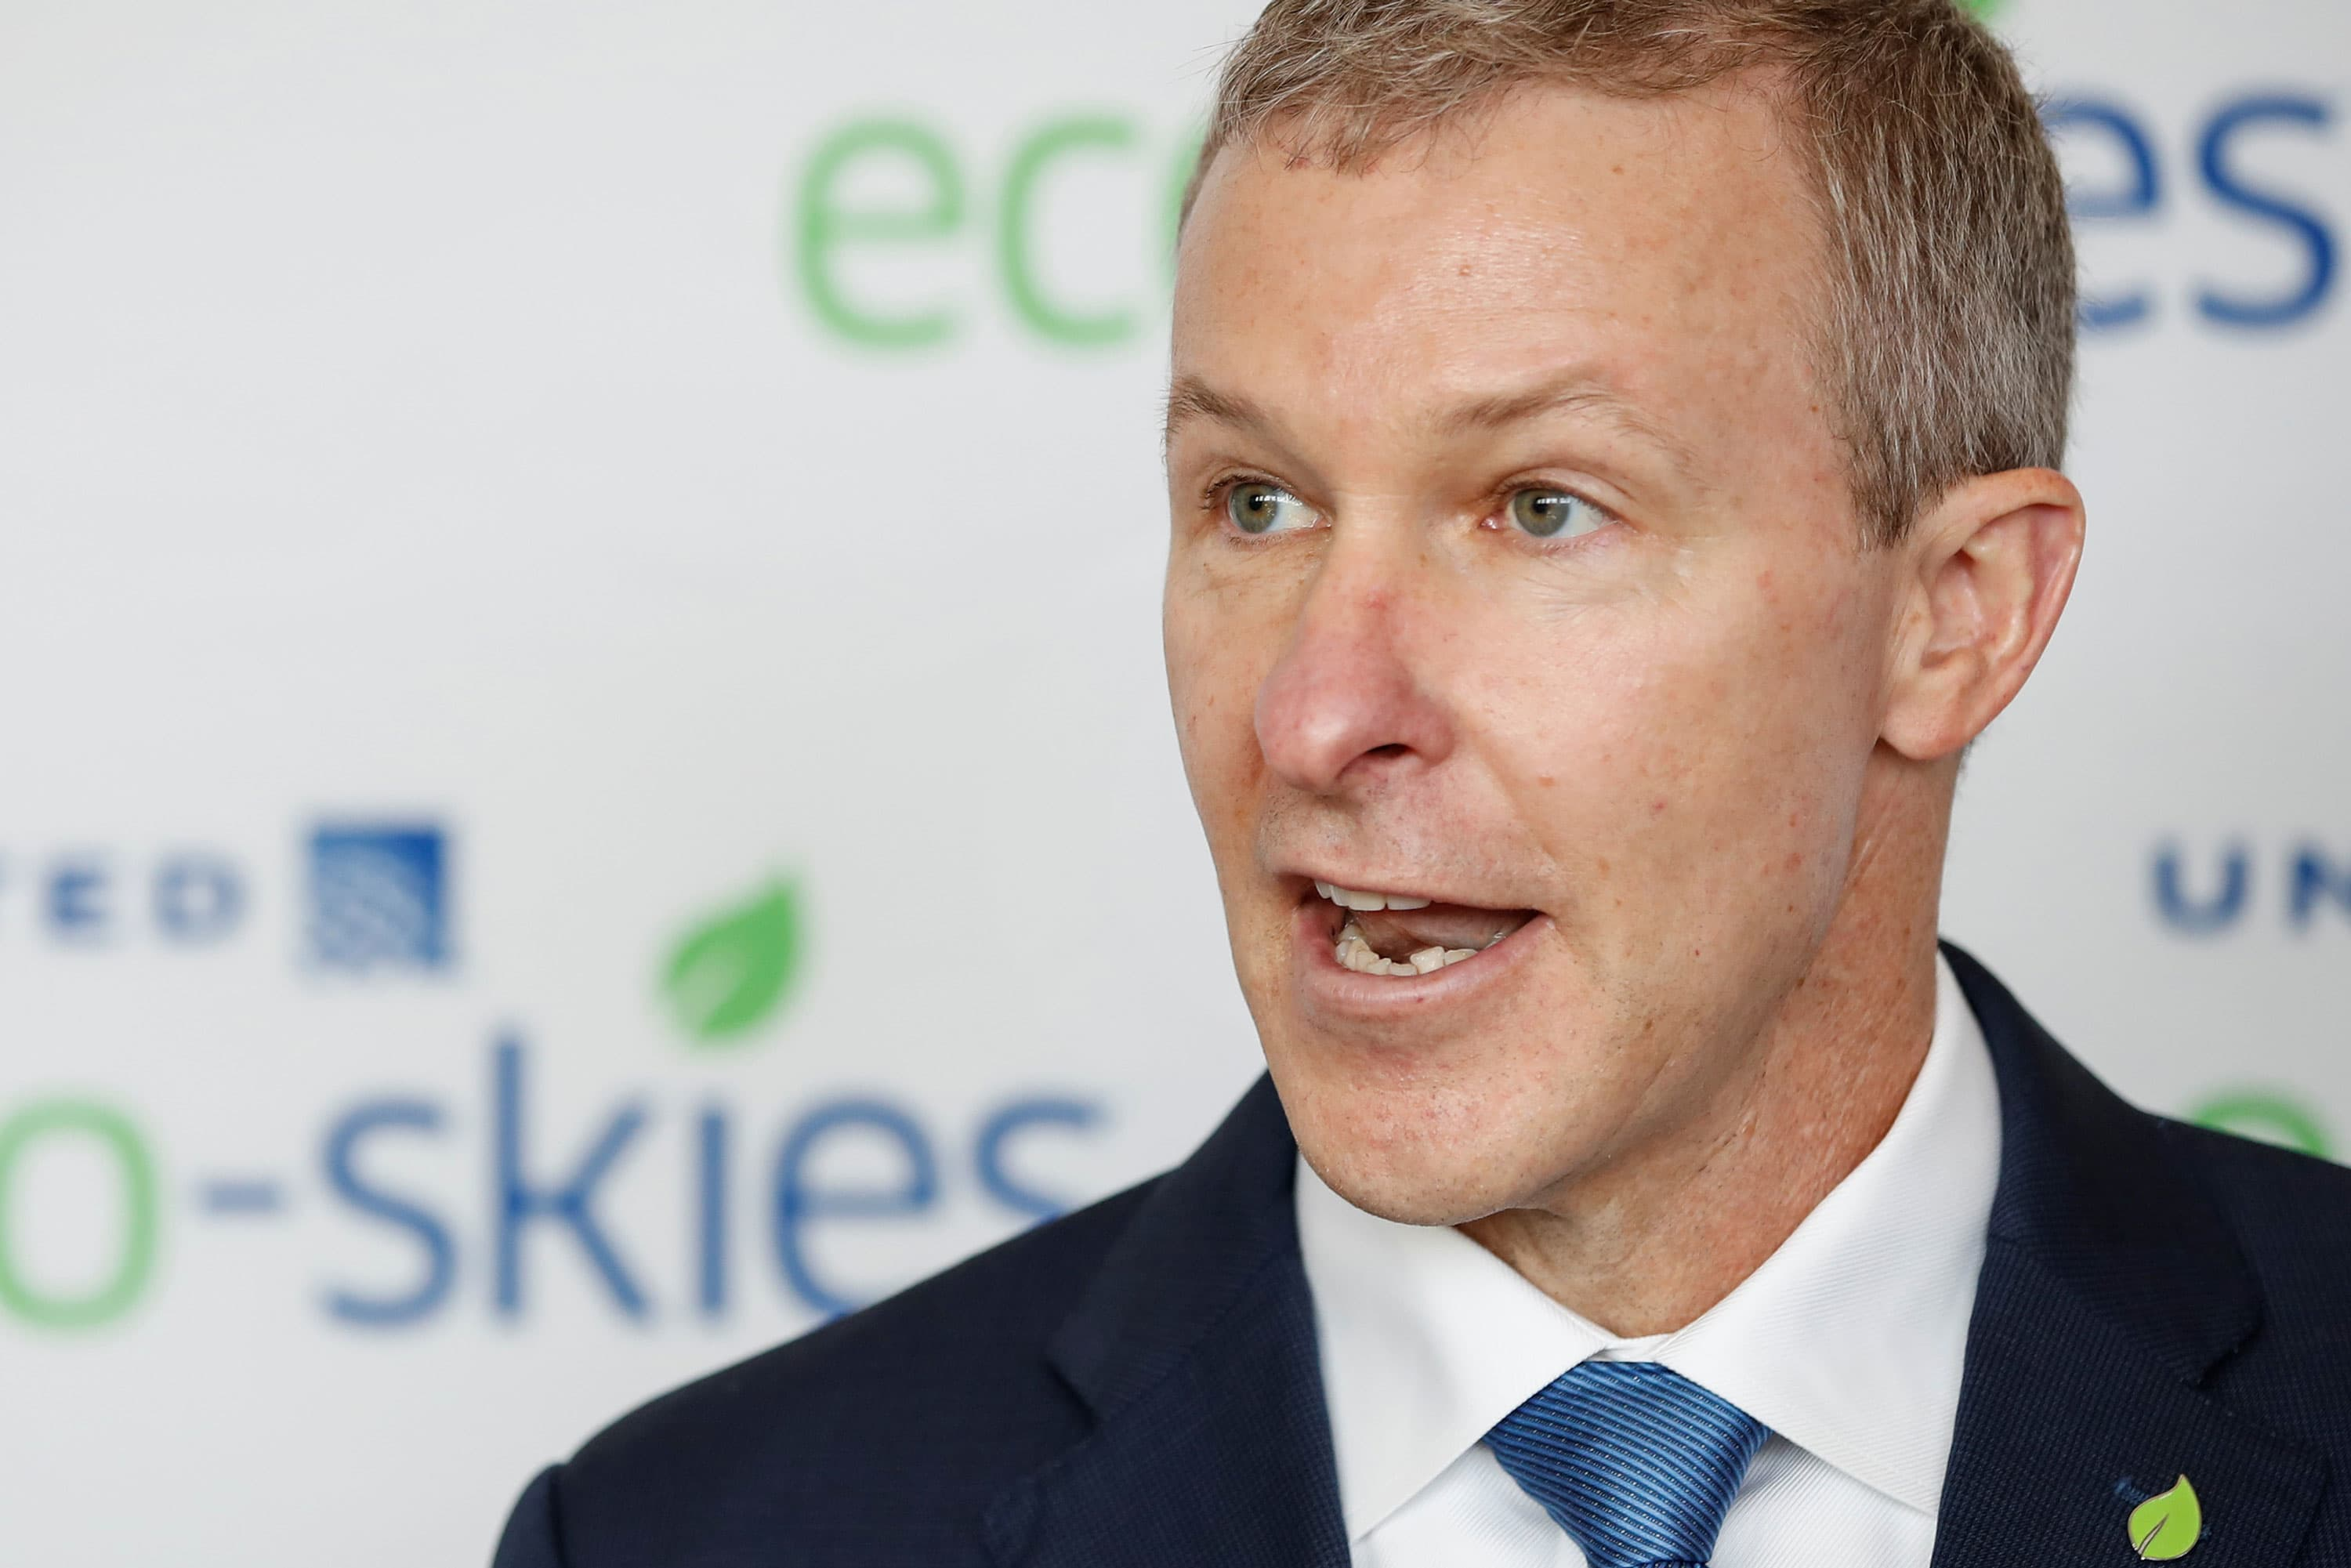 United Airlines' new CEO Scott Kirby vows to get through coronavirus 'hell'